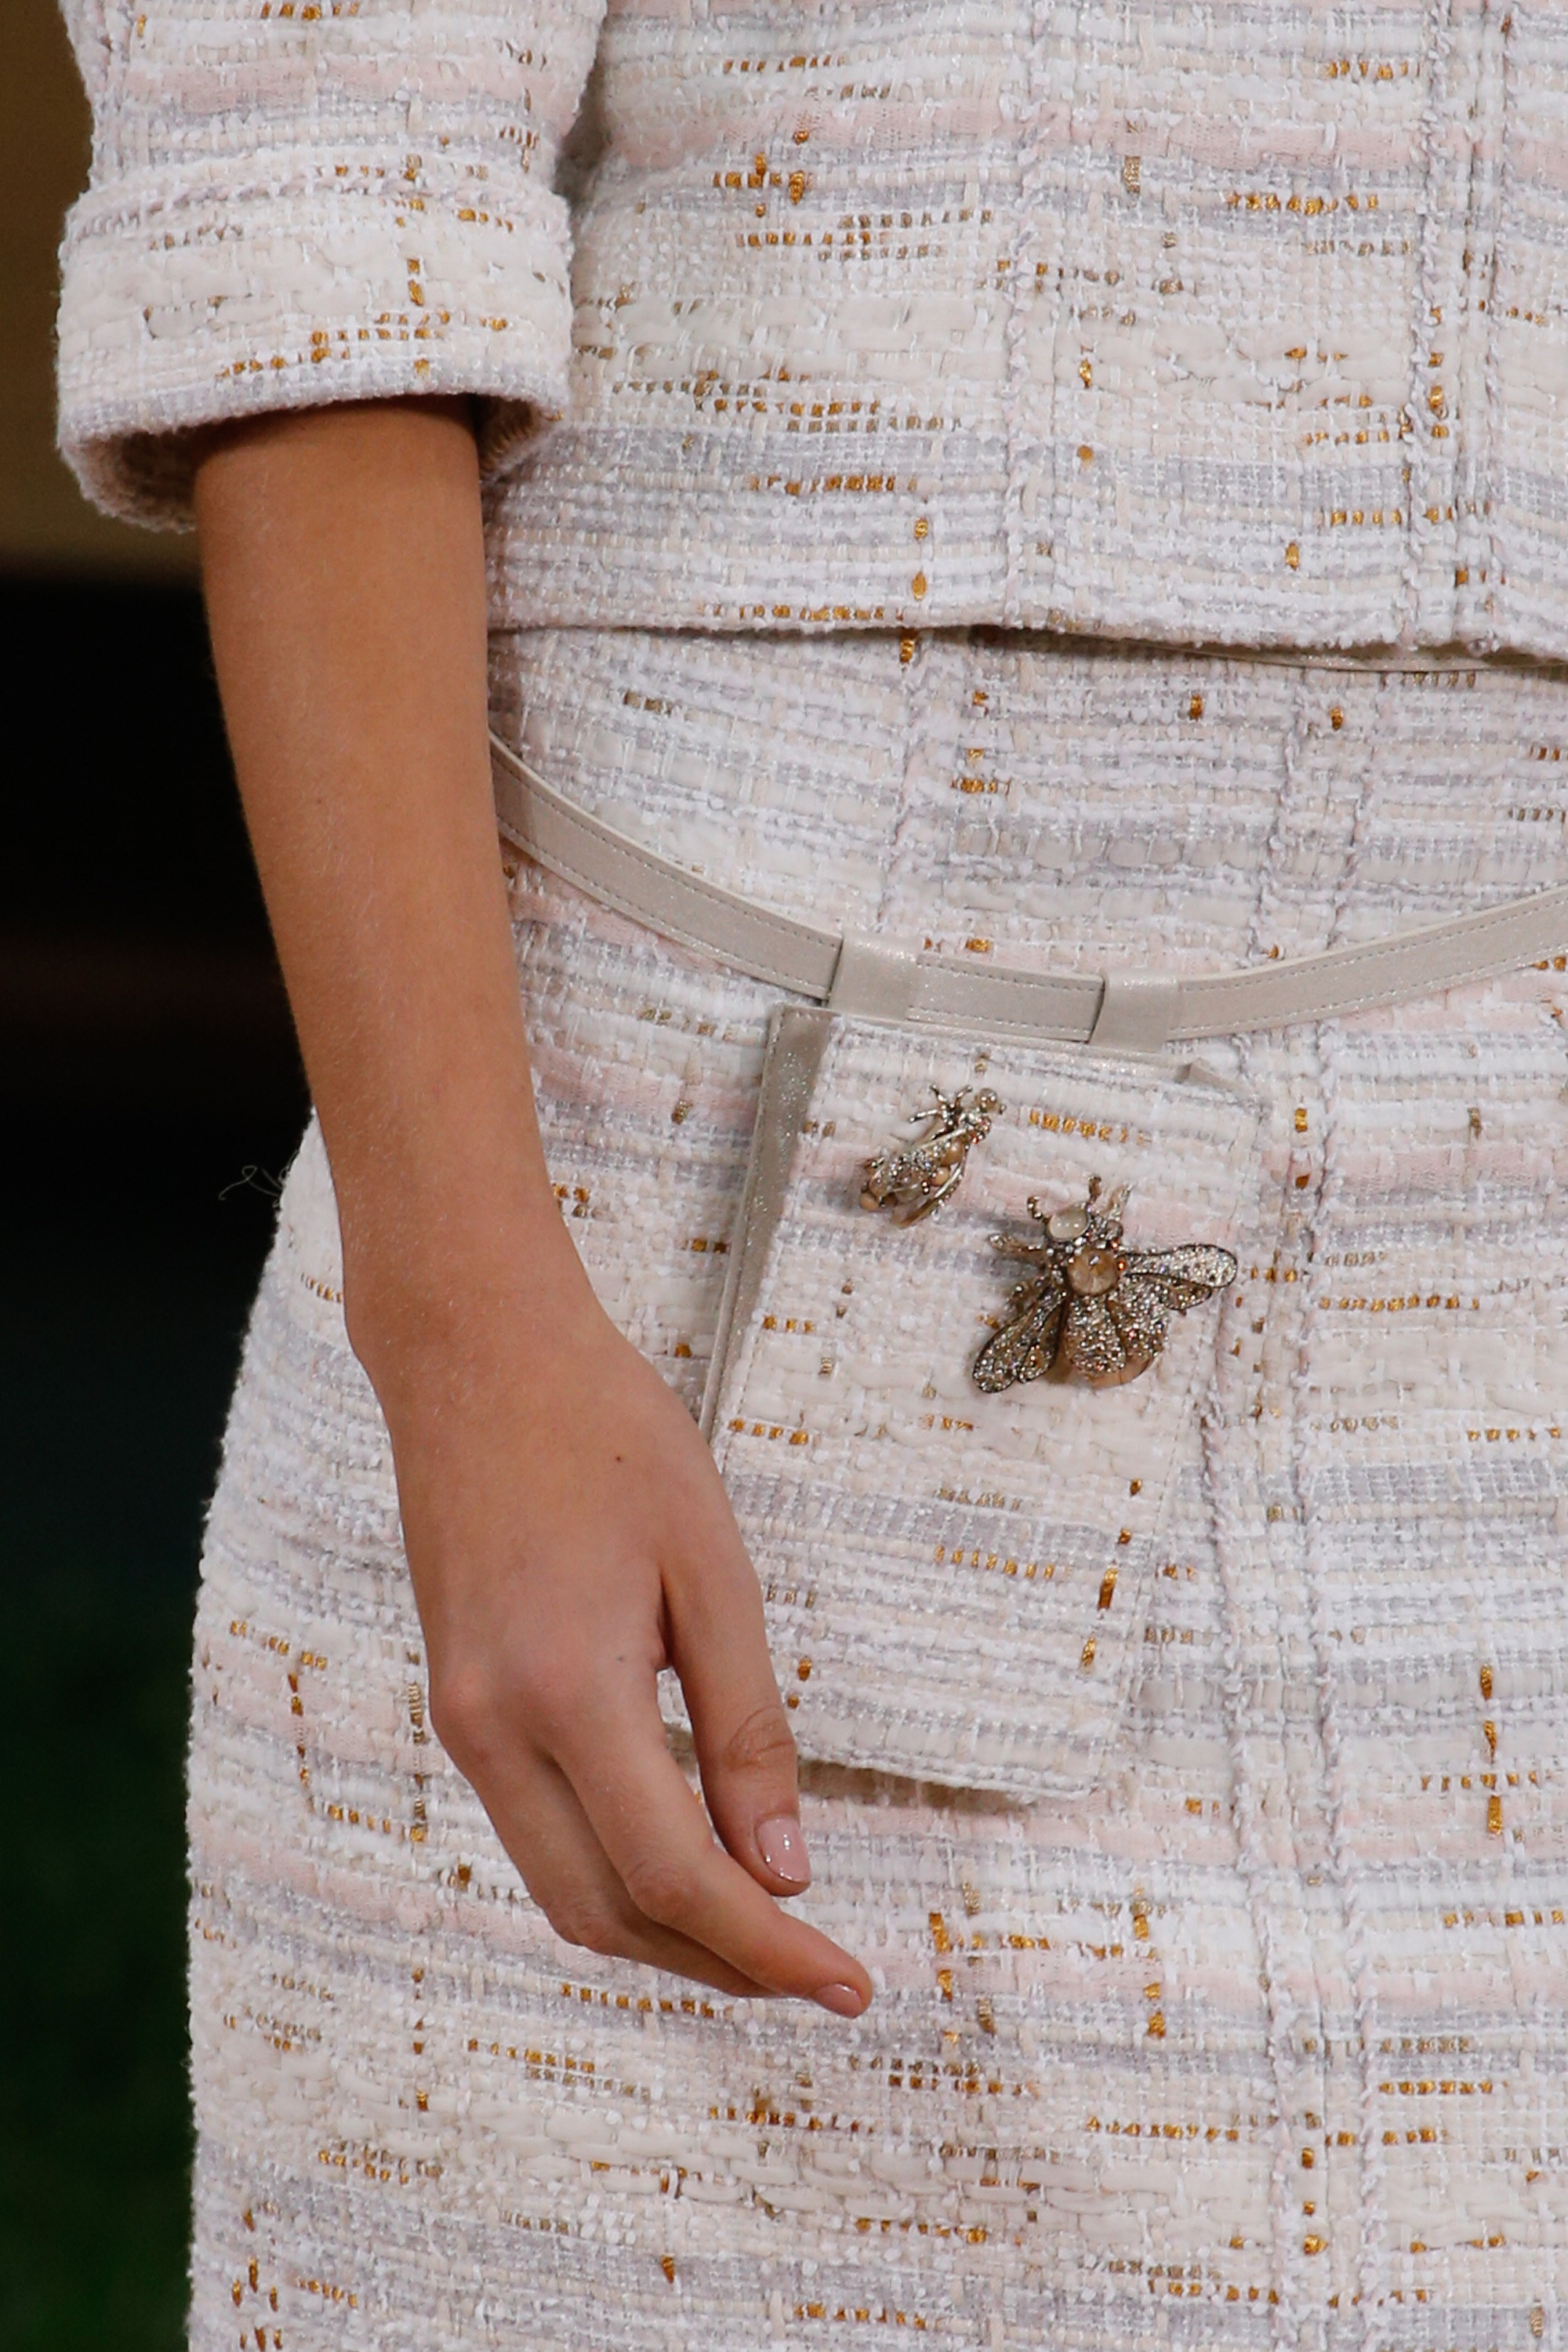 ChanelSS16_Chanel Detail 01